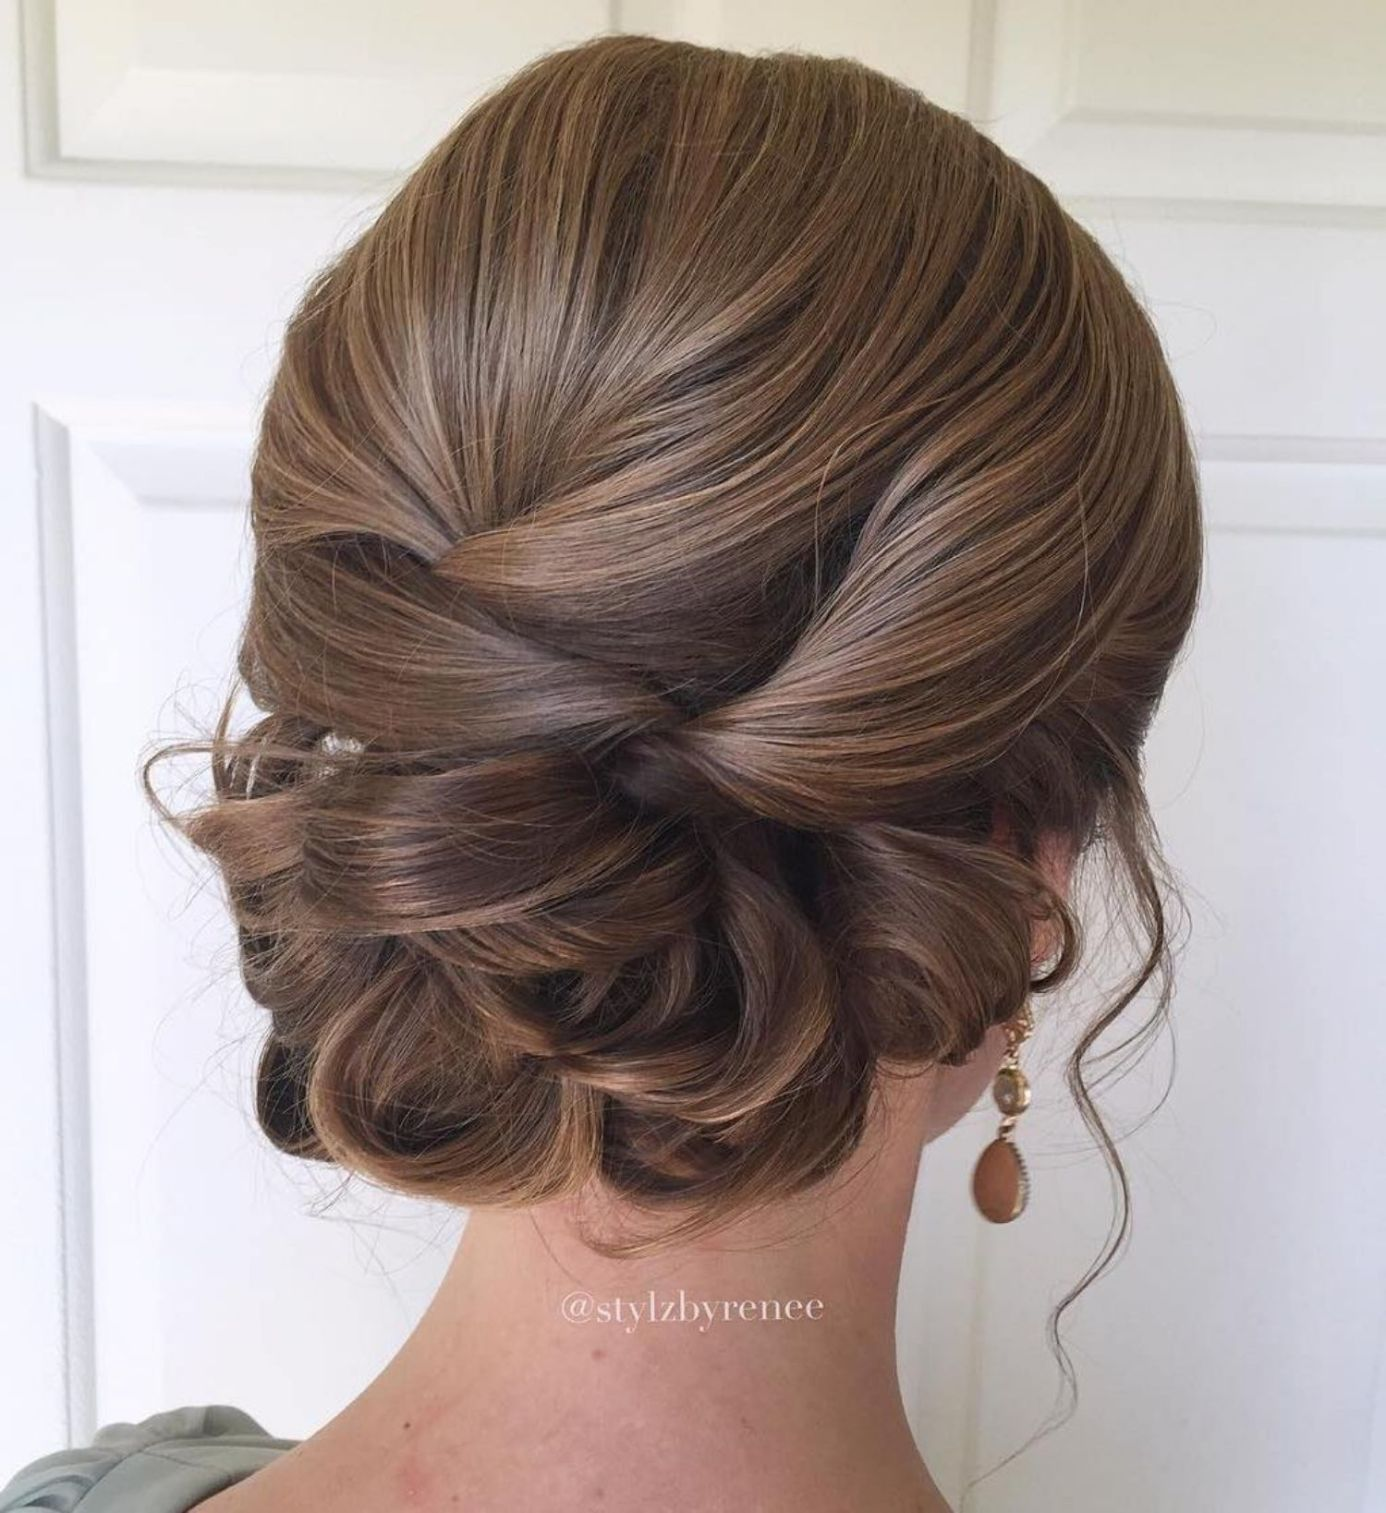 Simple Diy Hairstyles Everyday: Updos For Medium Length Hair